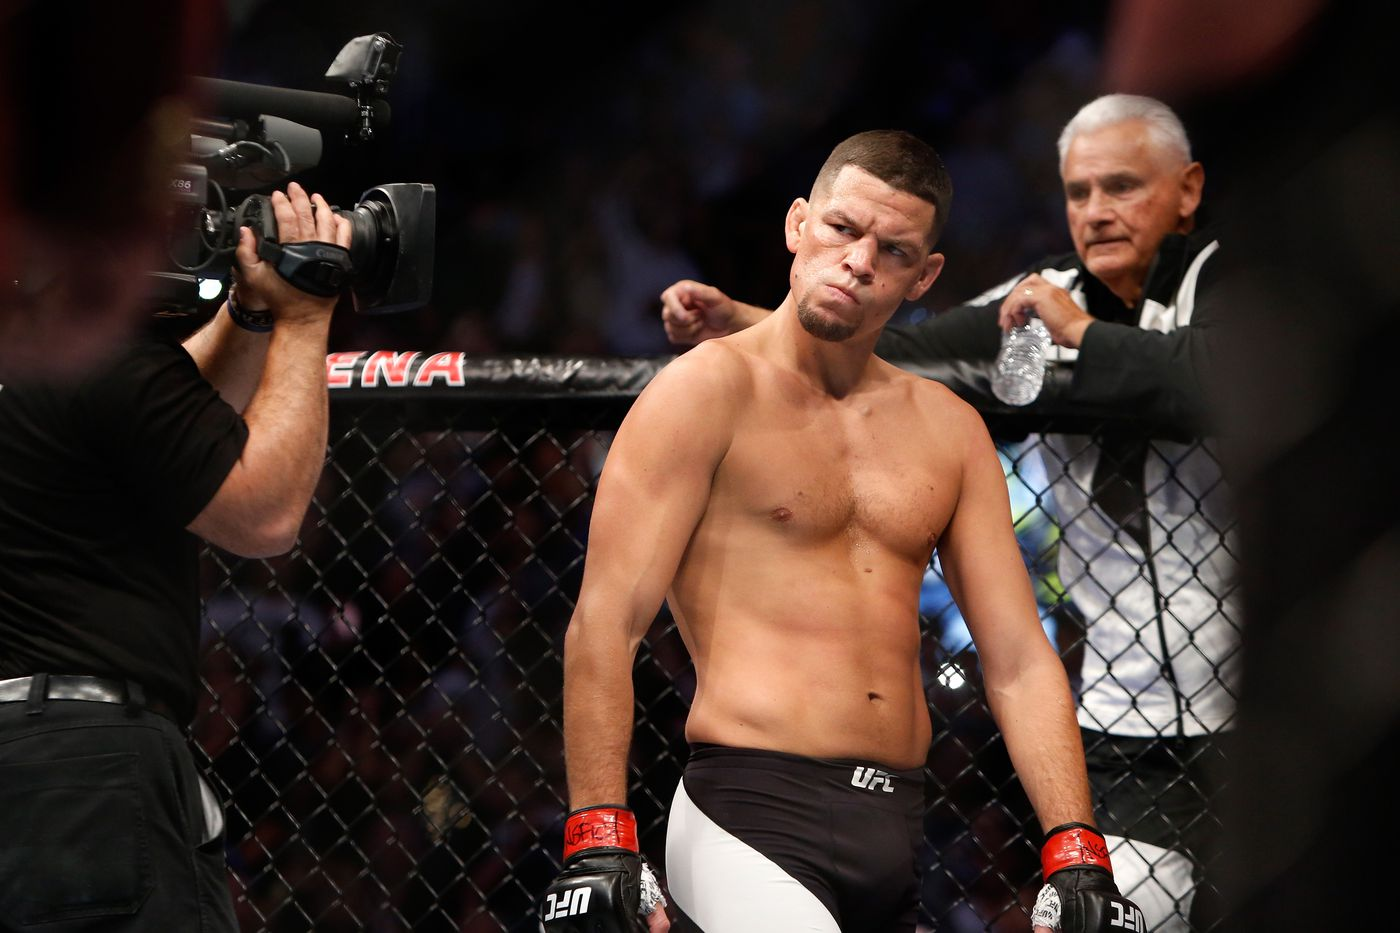 Mma fighters suck dick career Anik Nate Diaz A Top Five Ppv Draw In Ufc Without Conor Mcgregor Mmamania Com